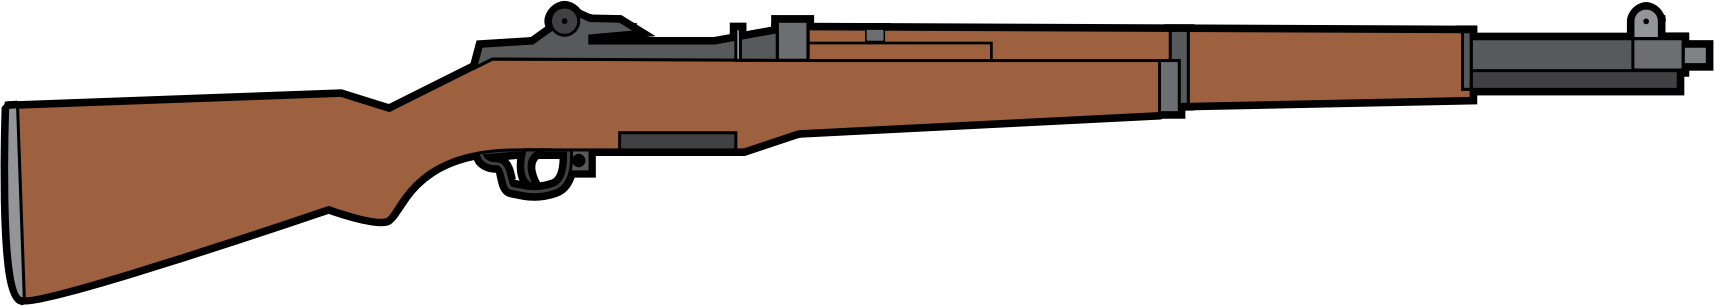 M-1 Garand rifle by ray4ad